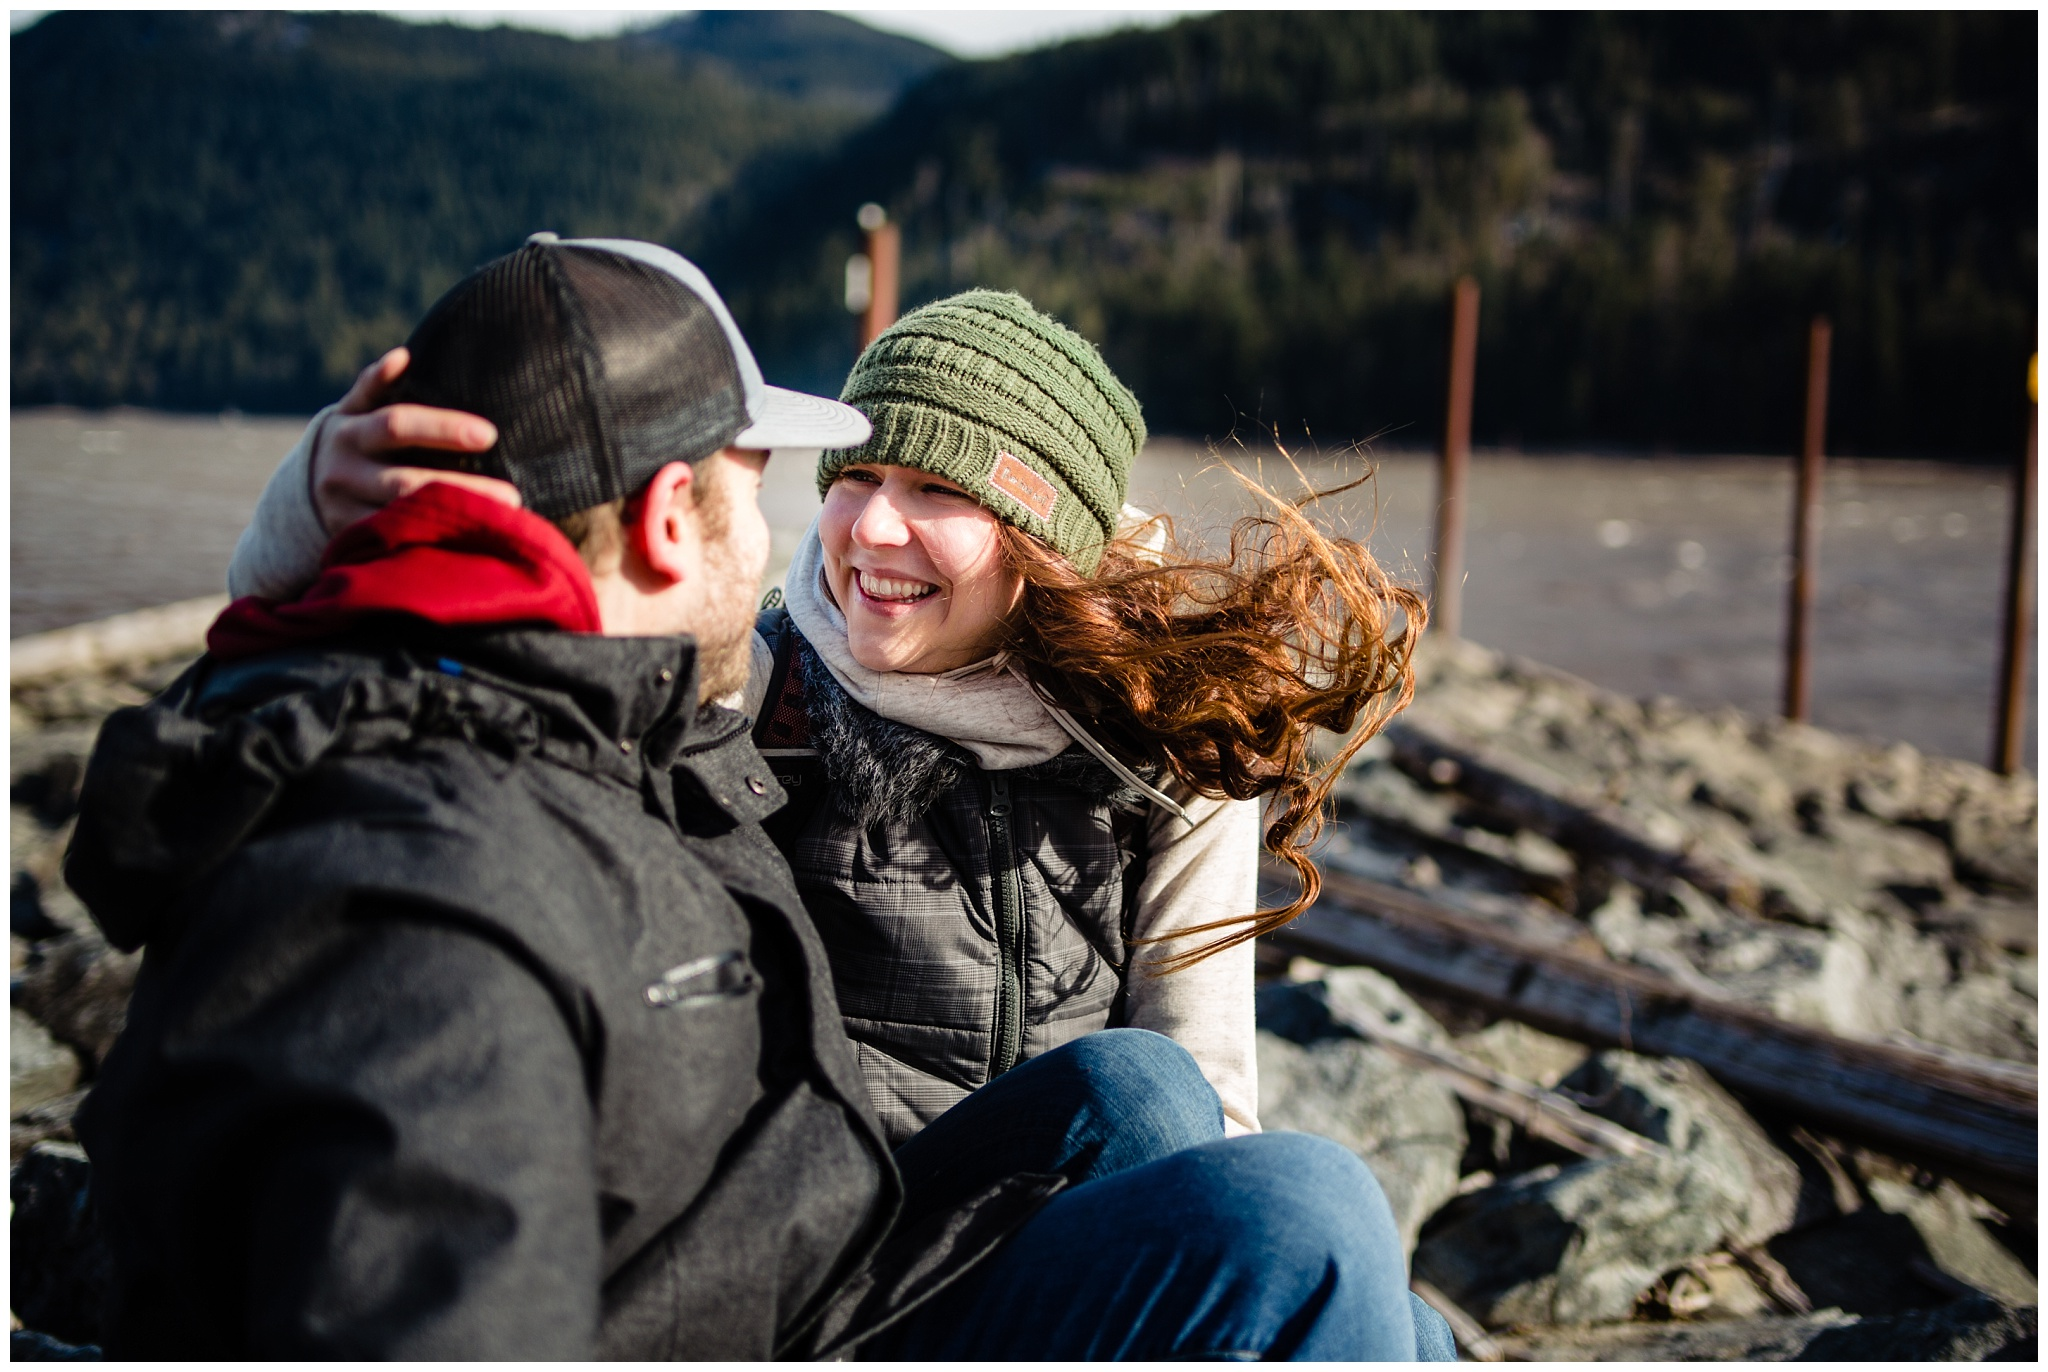 Stave Lake Adventure Engagement  Photographer Mission Fun Candid Natural Romantic Couple Poses_0003.jpg